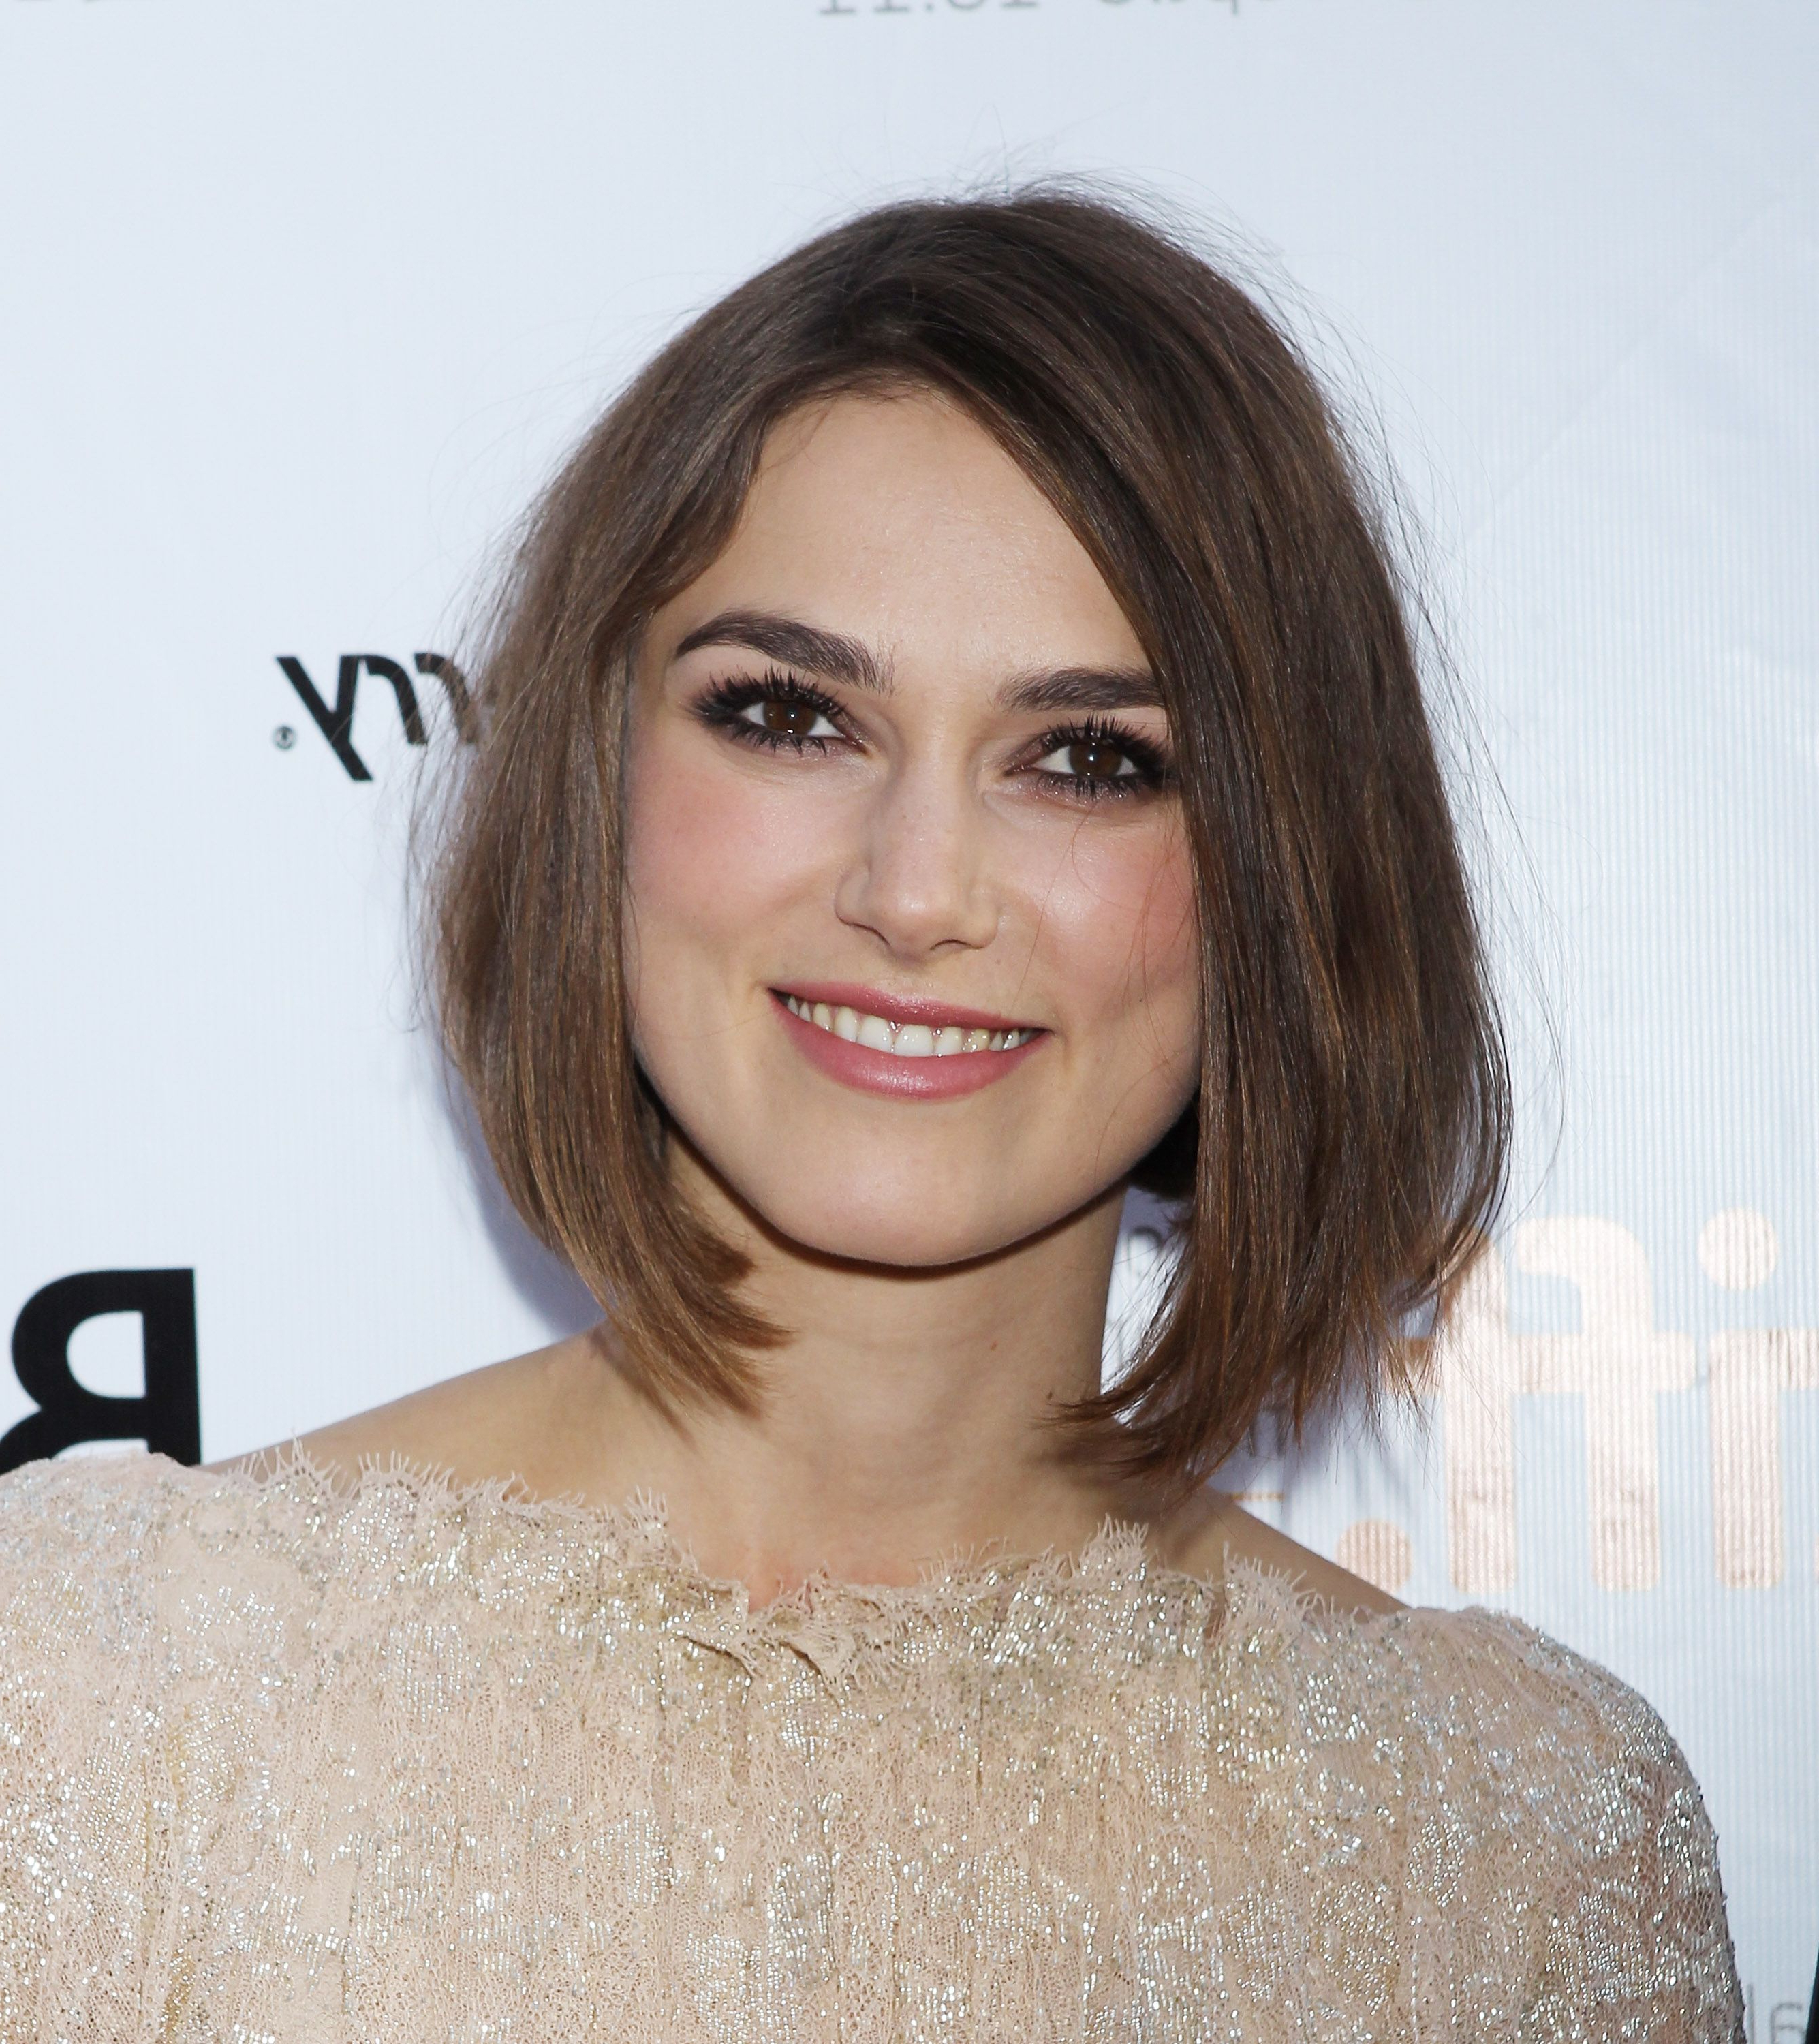 The 13 Best Hairstyles For Square Faces Regarding Short Haircuts For Square Face (View 21 of 25)